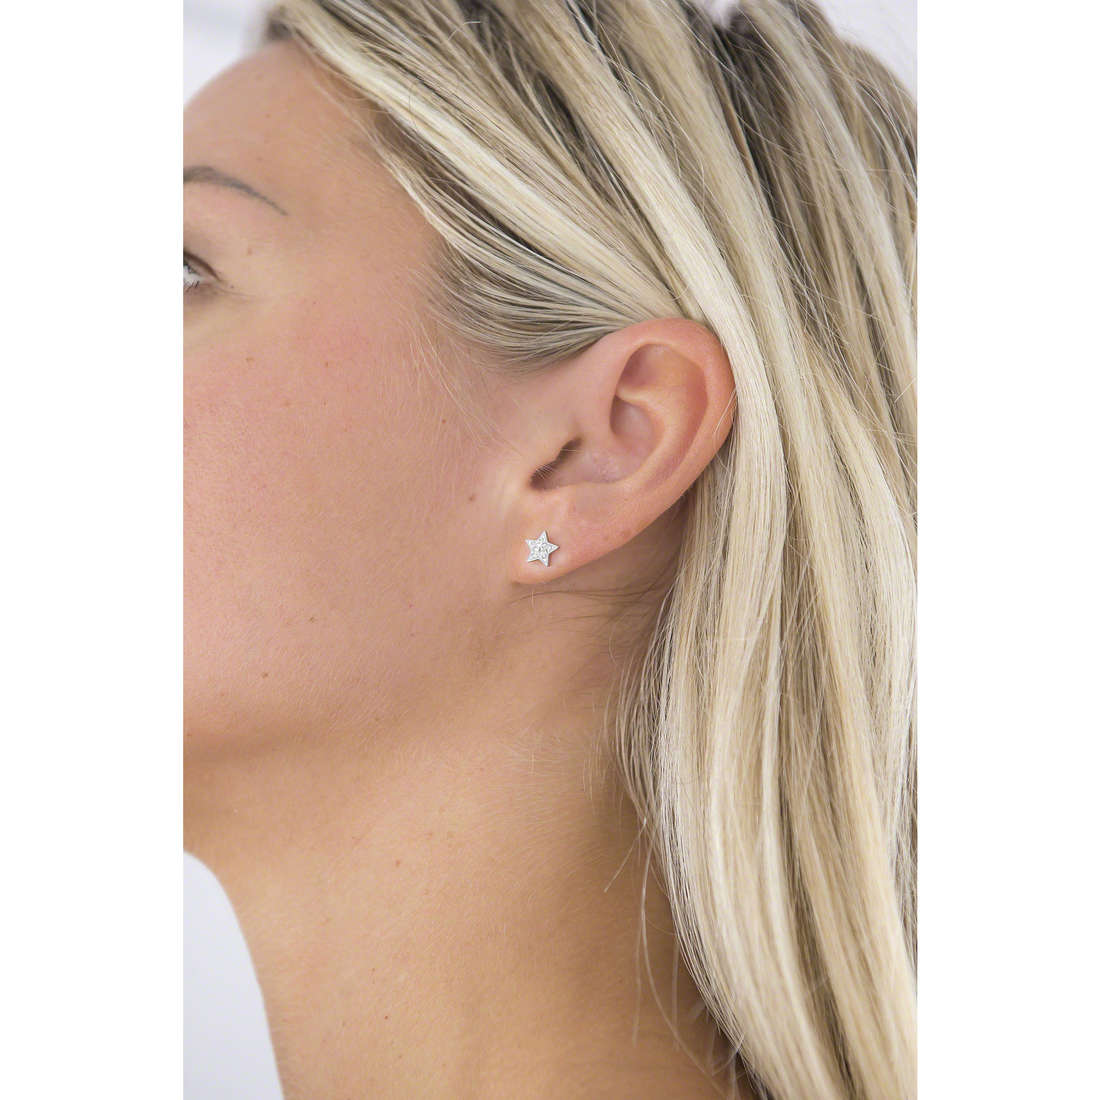 Marlù boucles d'oreille Time To femme 18OR031 indosso